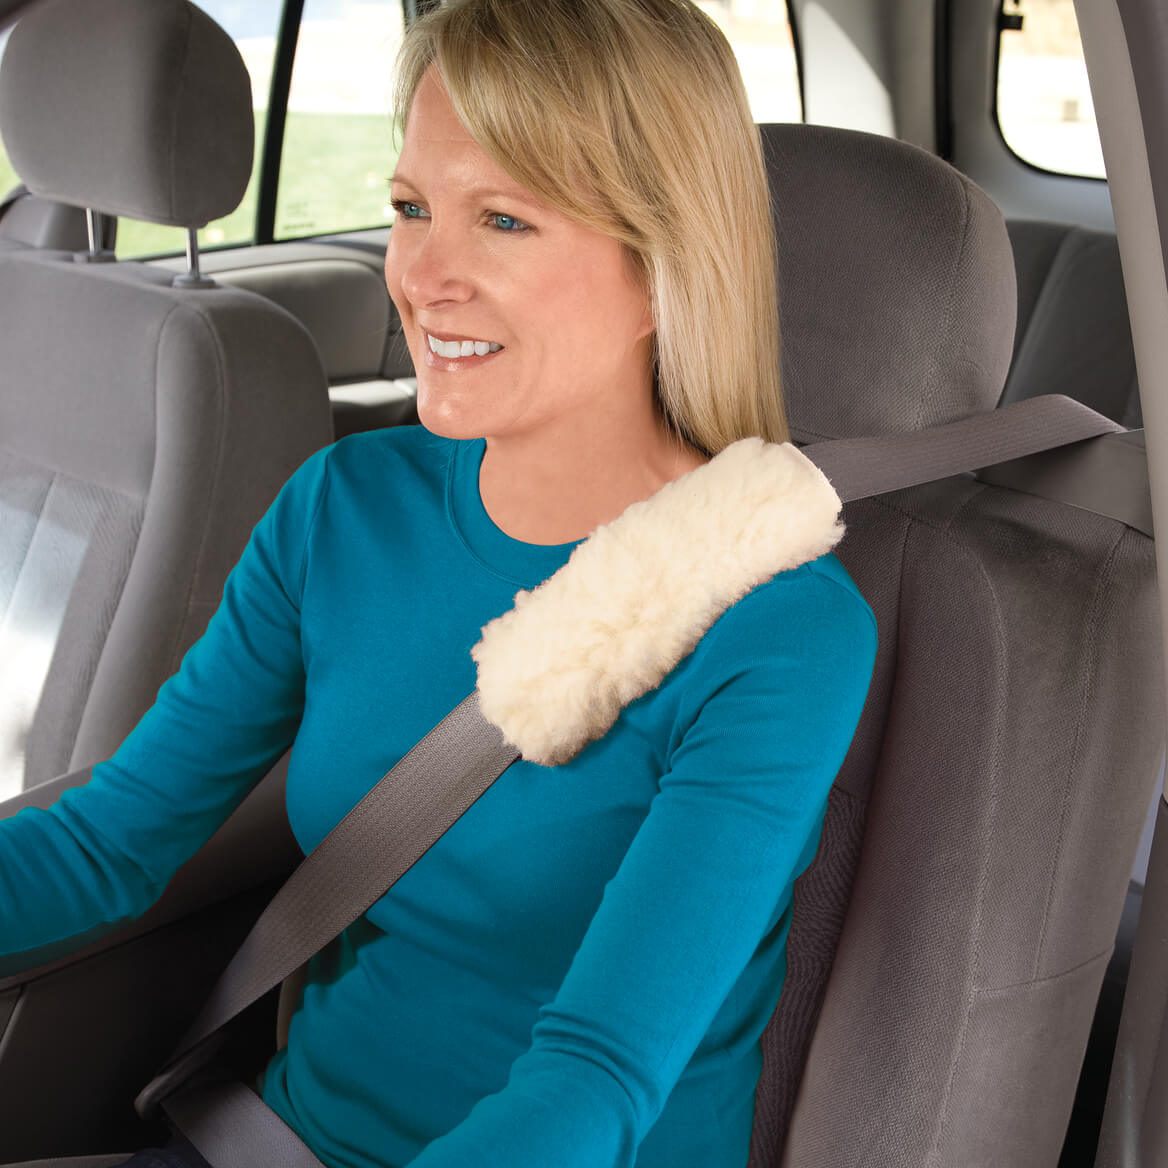 Sherpa Seat Belt Covers, Set of 2-337136